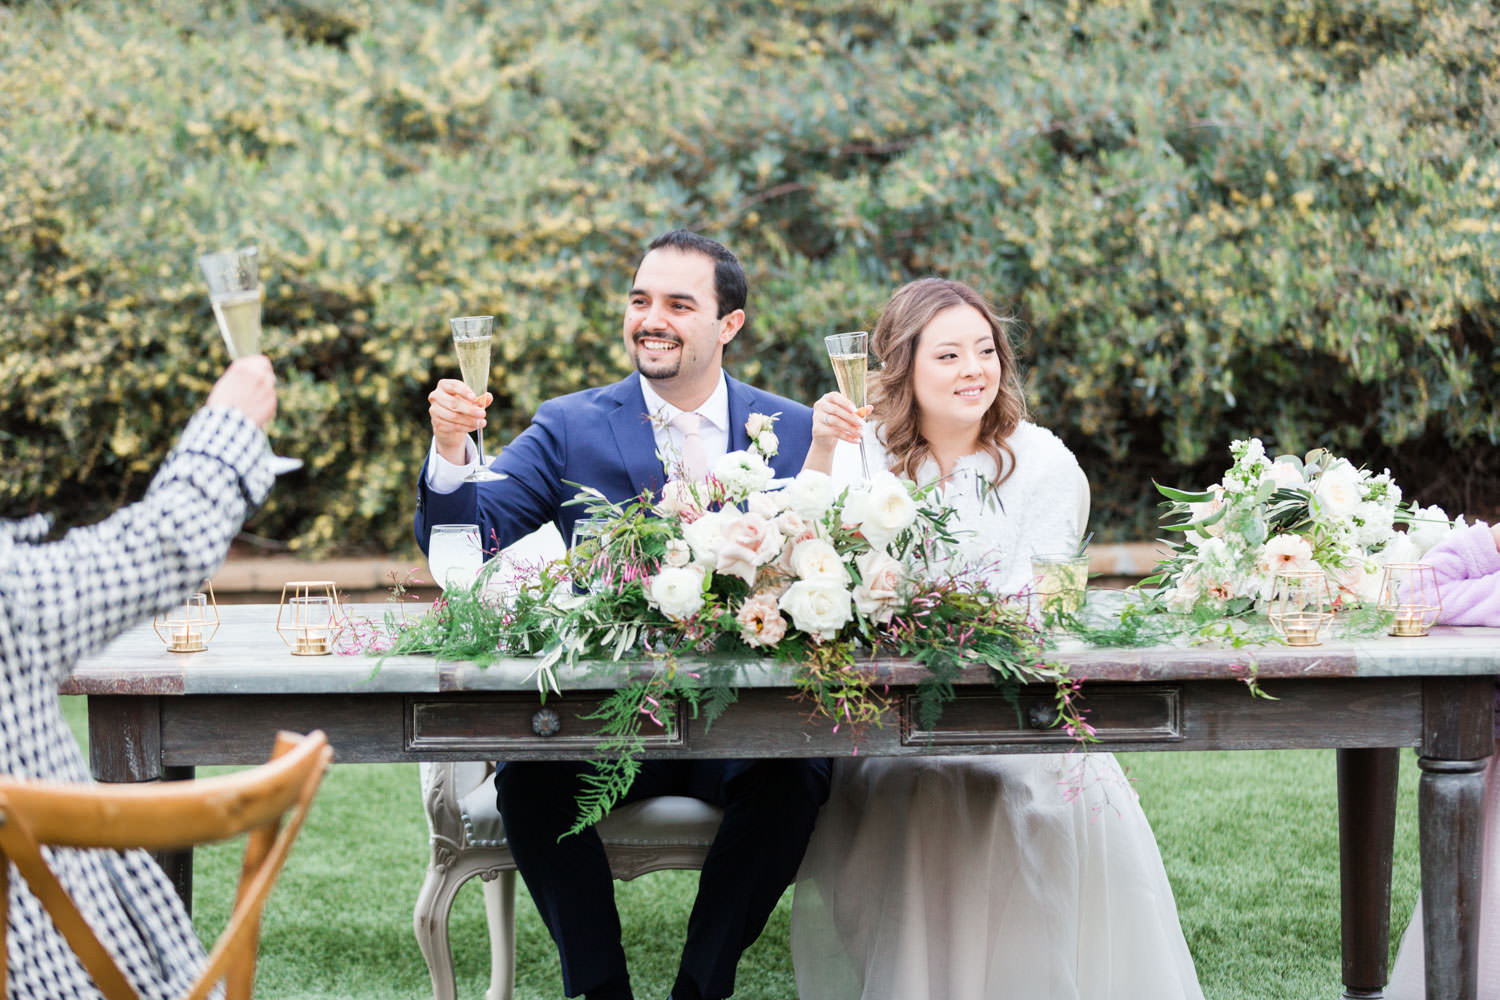 Toasts and speeches, Ethereal Open Air Resort Wedding Reception, Cavin Elizabeth Photography